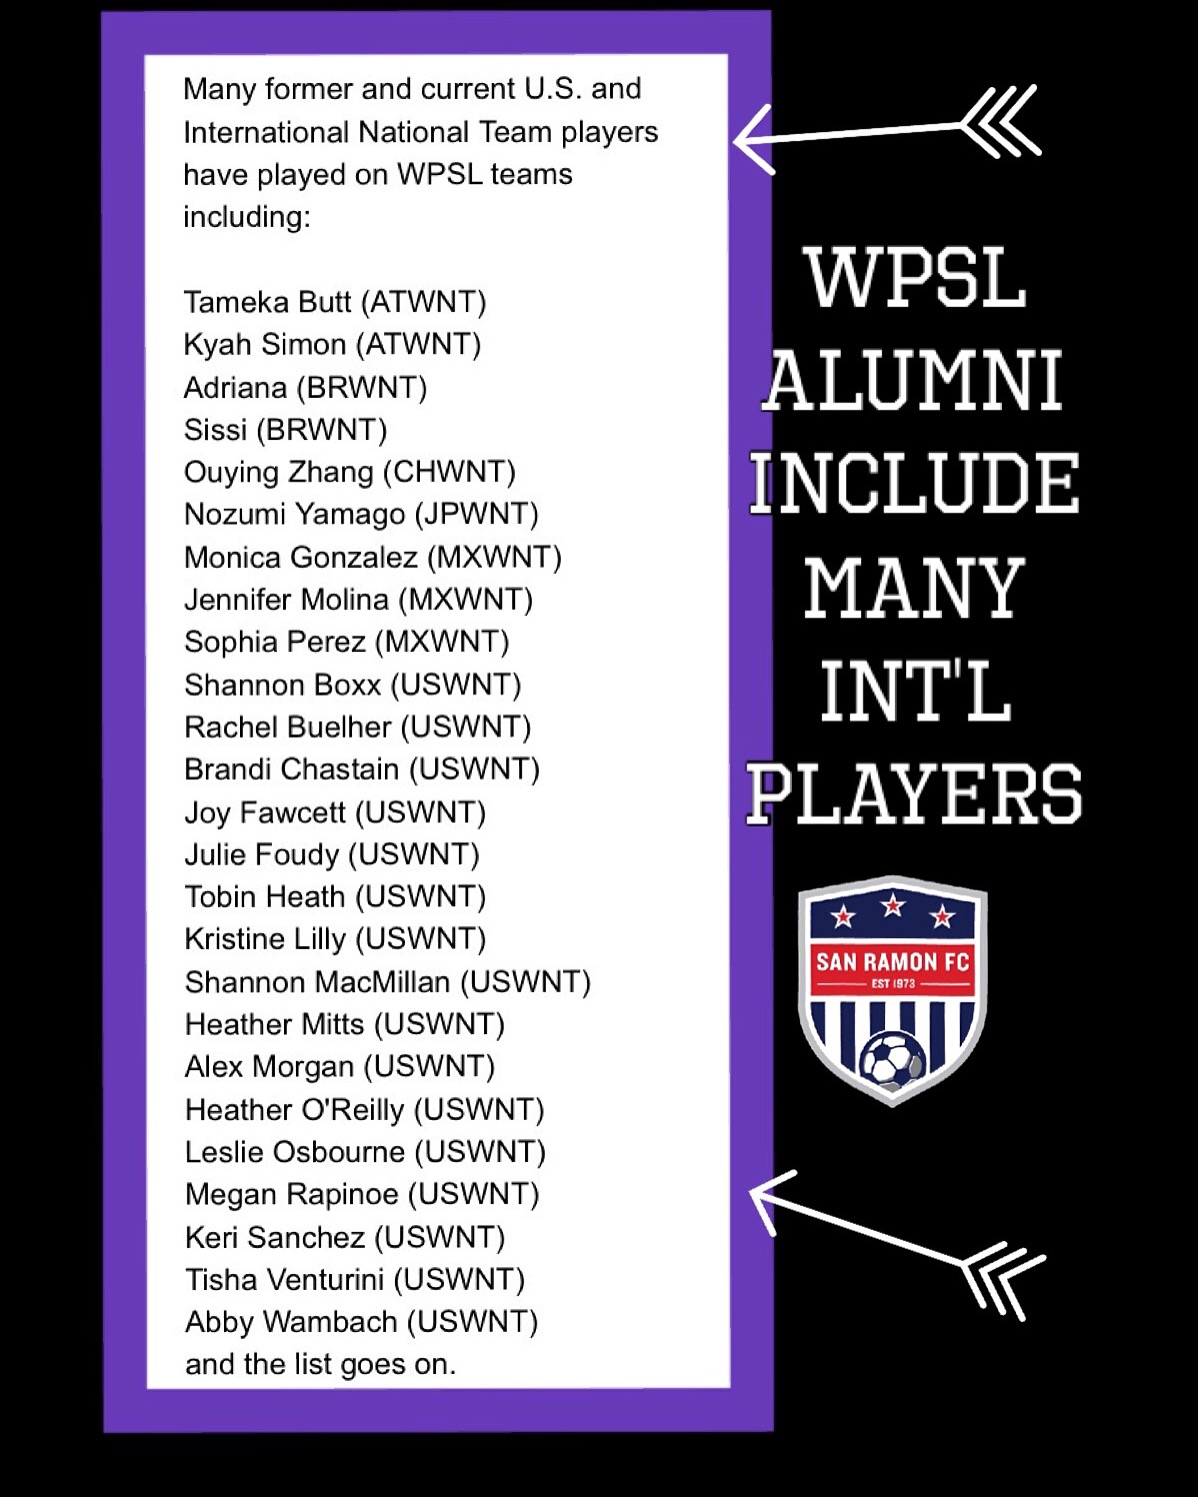 WPSL League Alumni